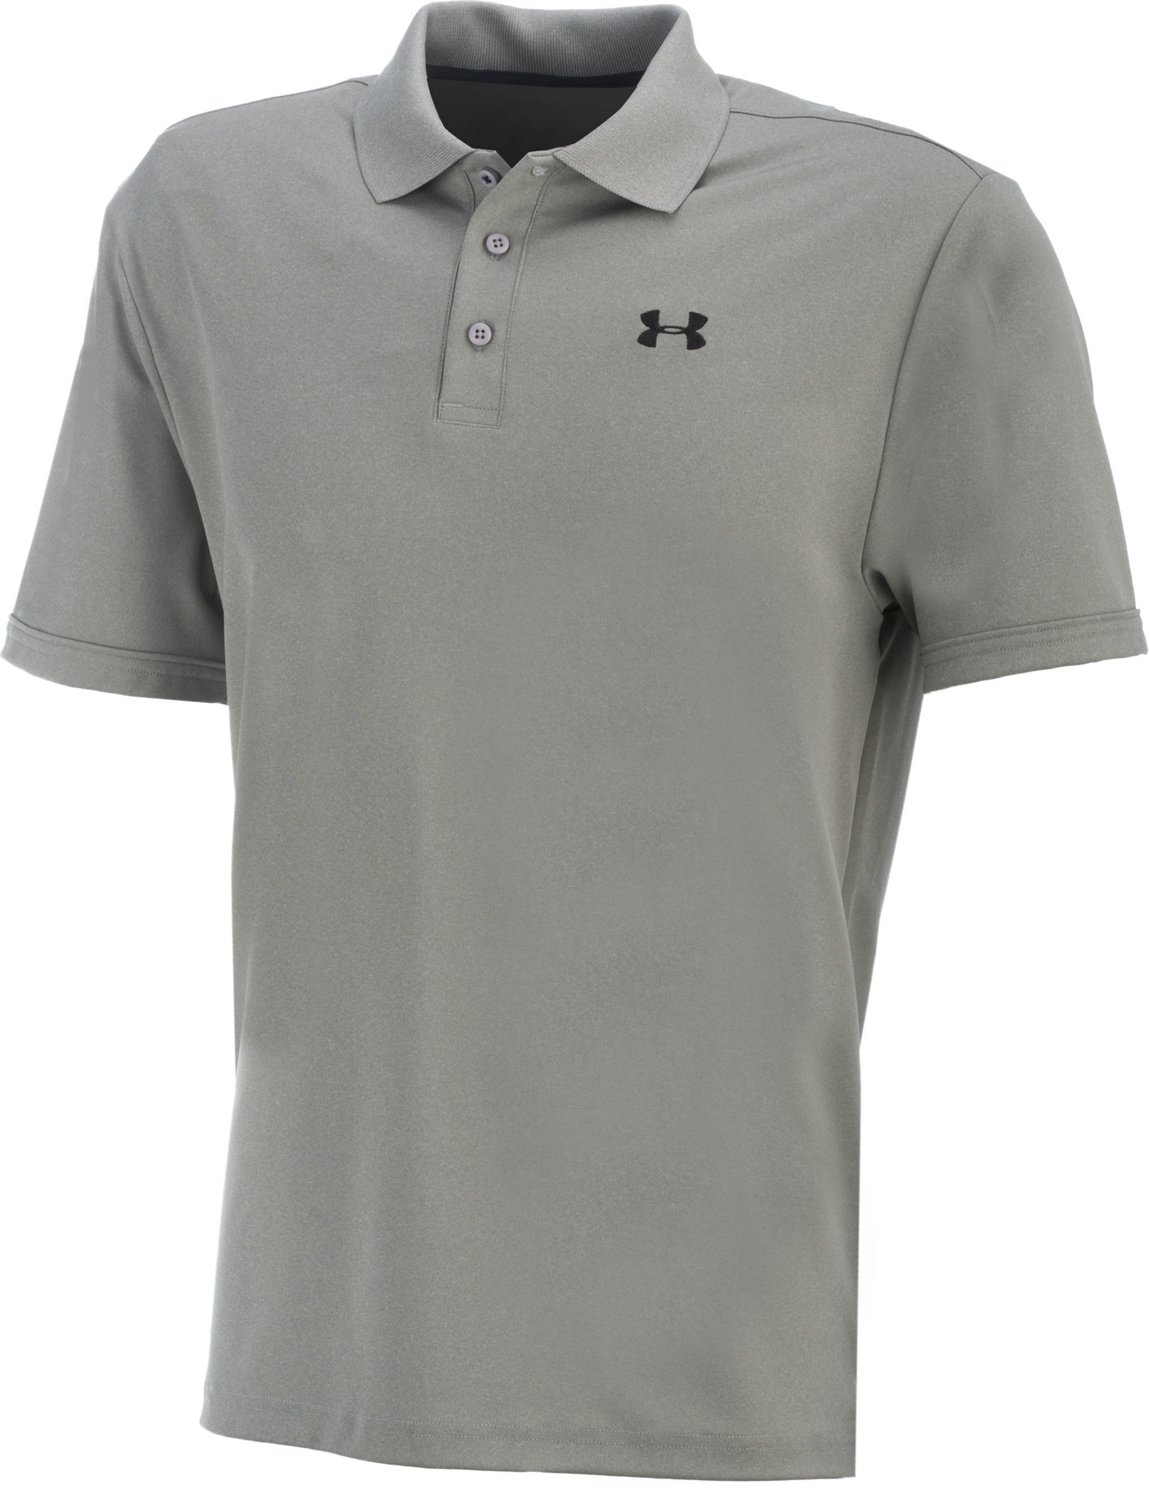 ae6e051d3 Under Armour Men's Performance Polo Shirt | Academy